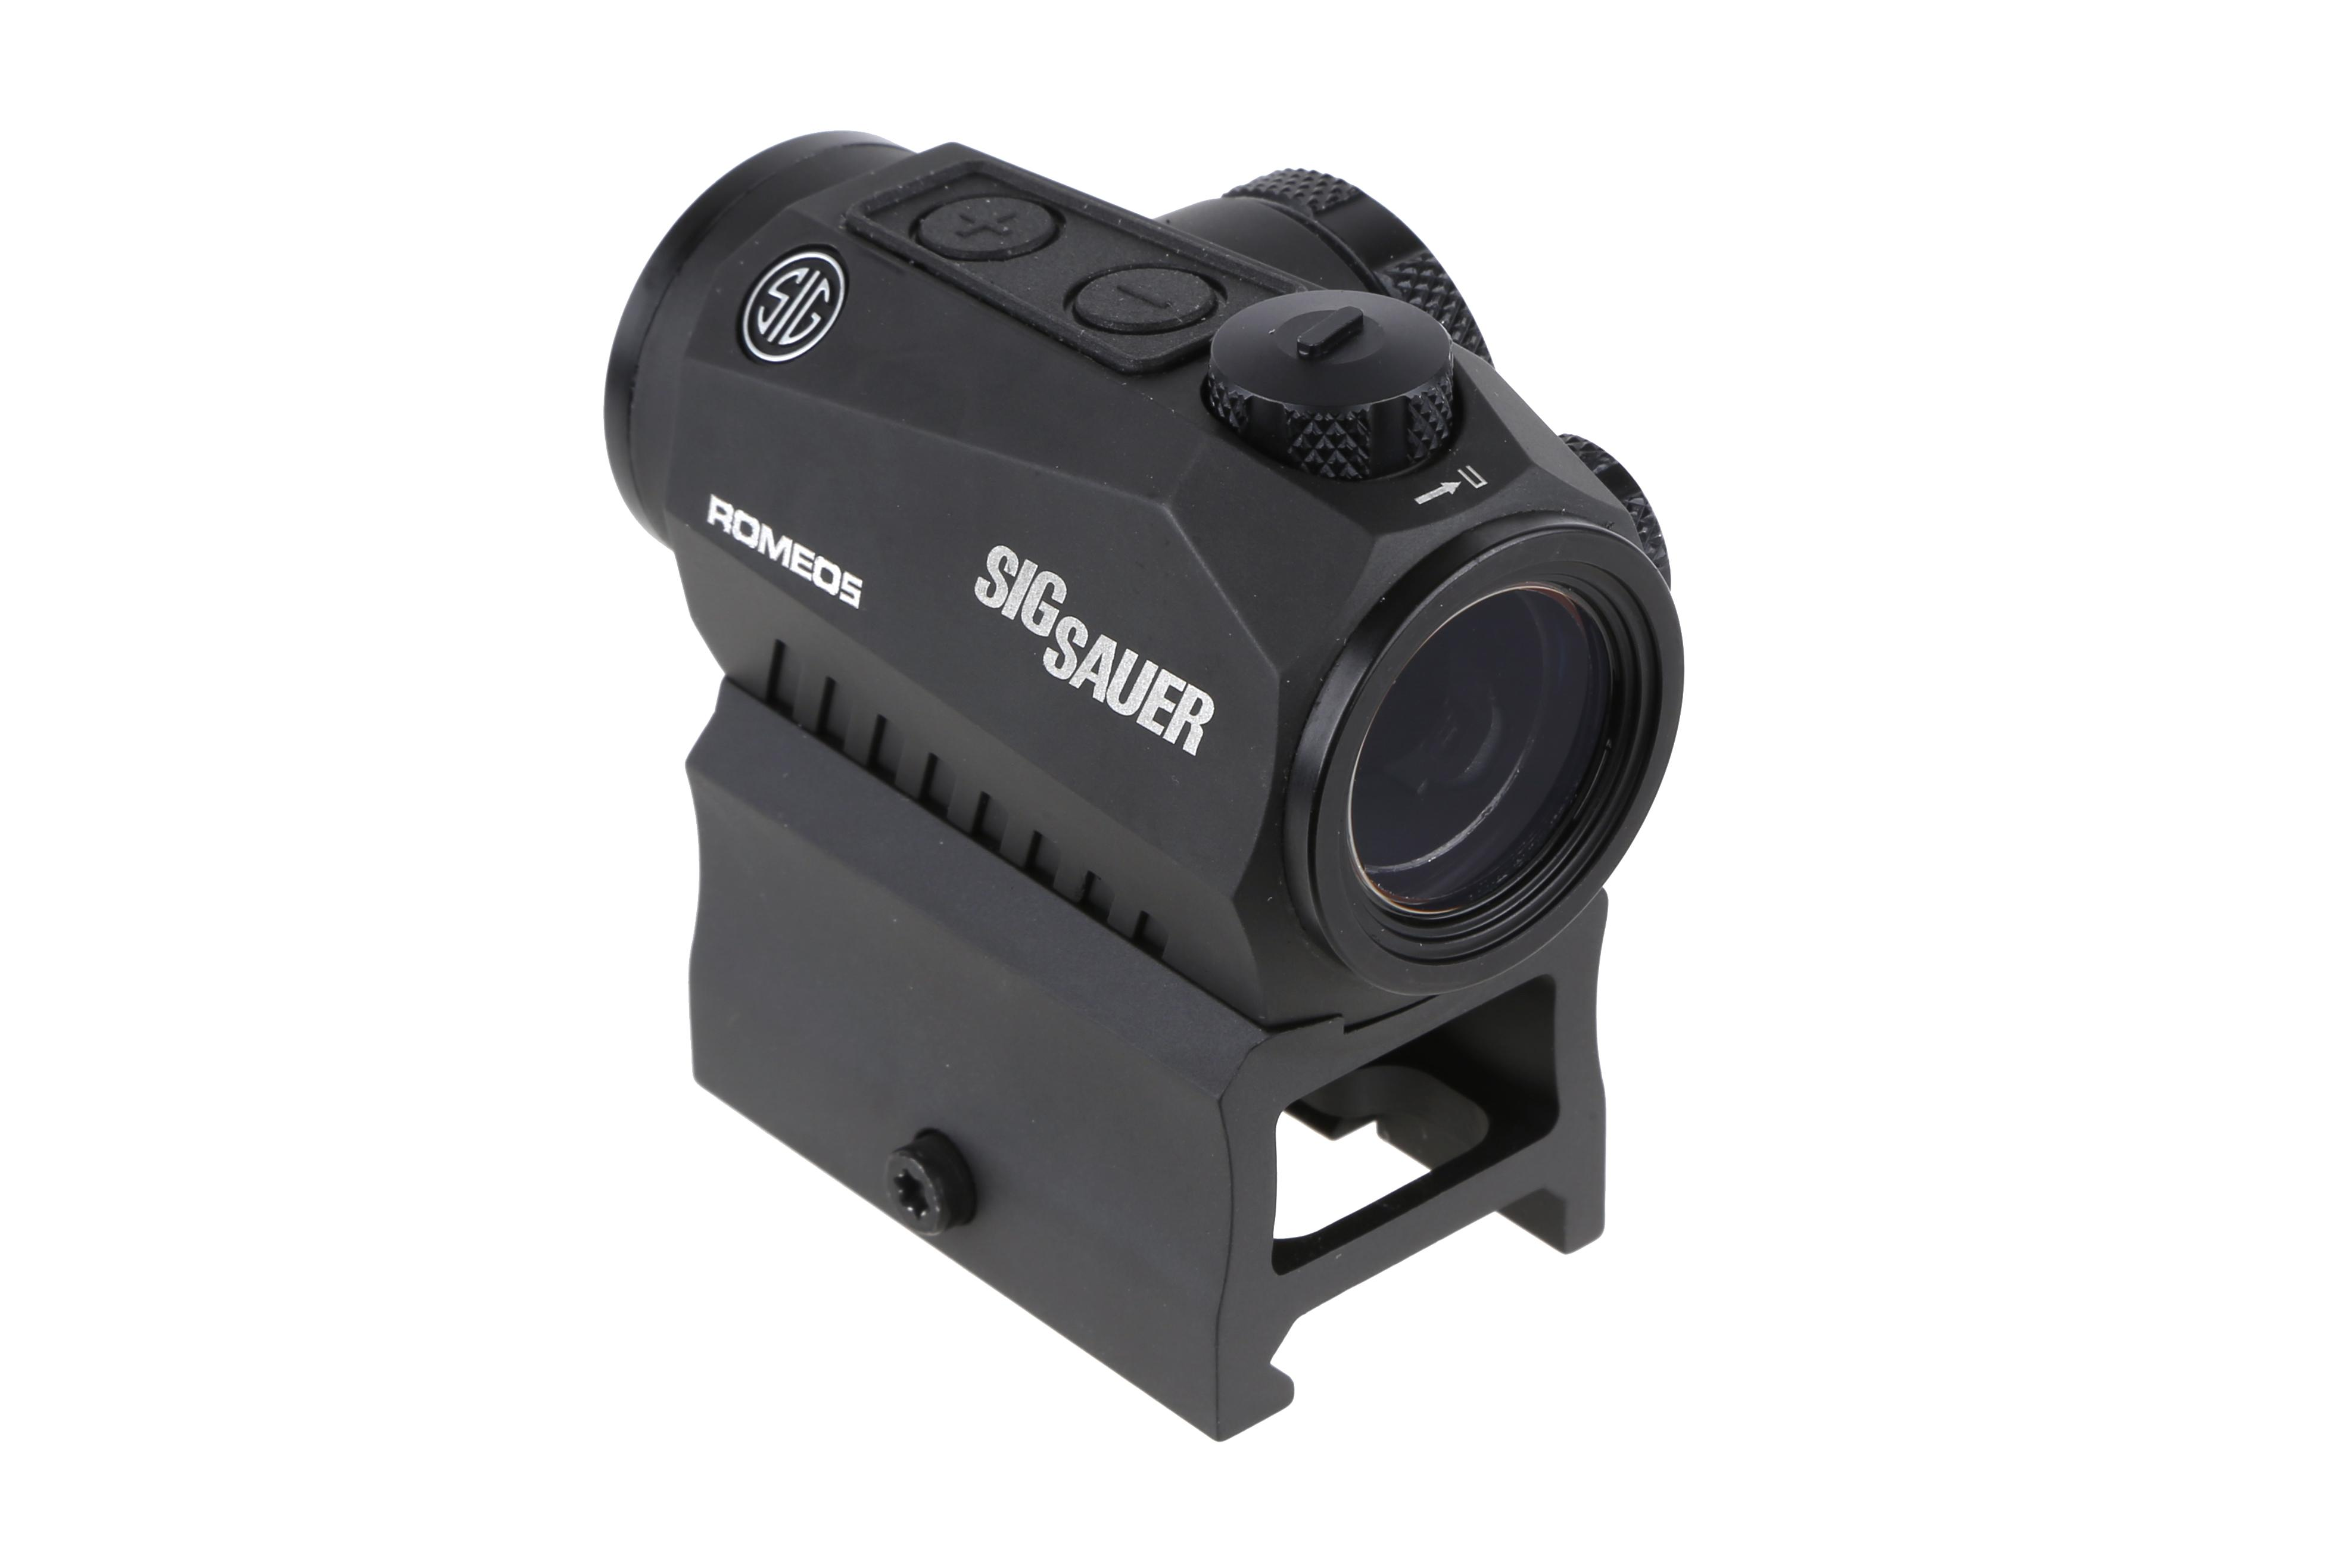 Sig Sauer Romeo 5, 1x20mm, 2 MOA Compact Red Dot Sight